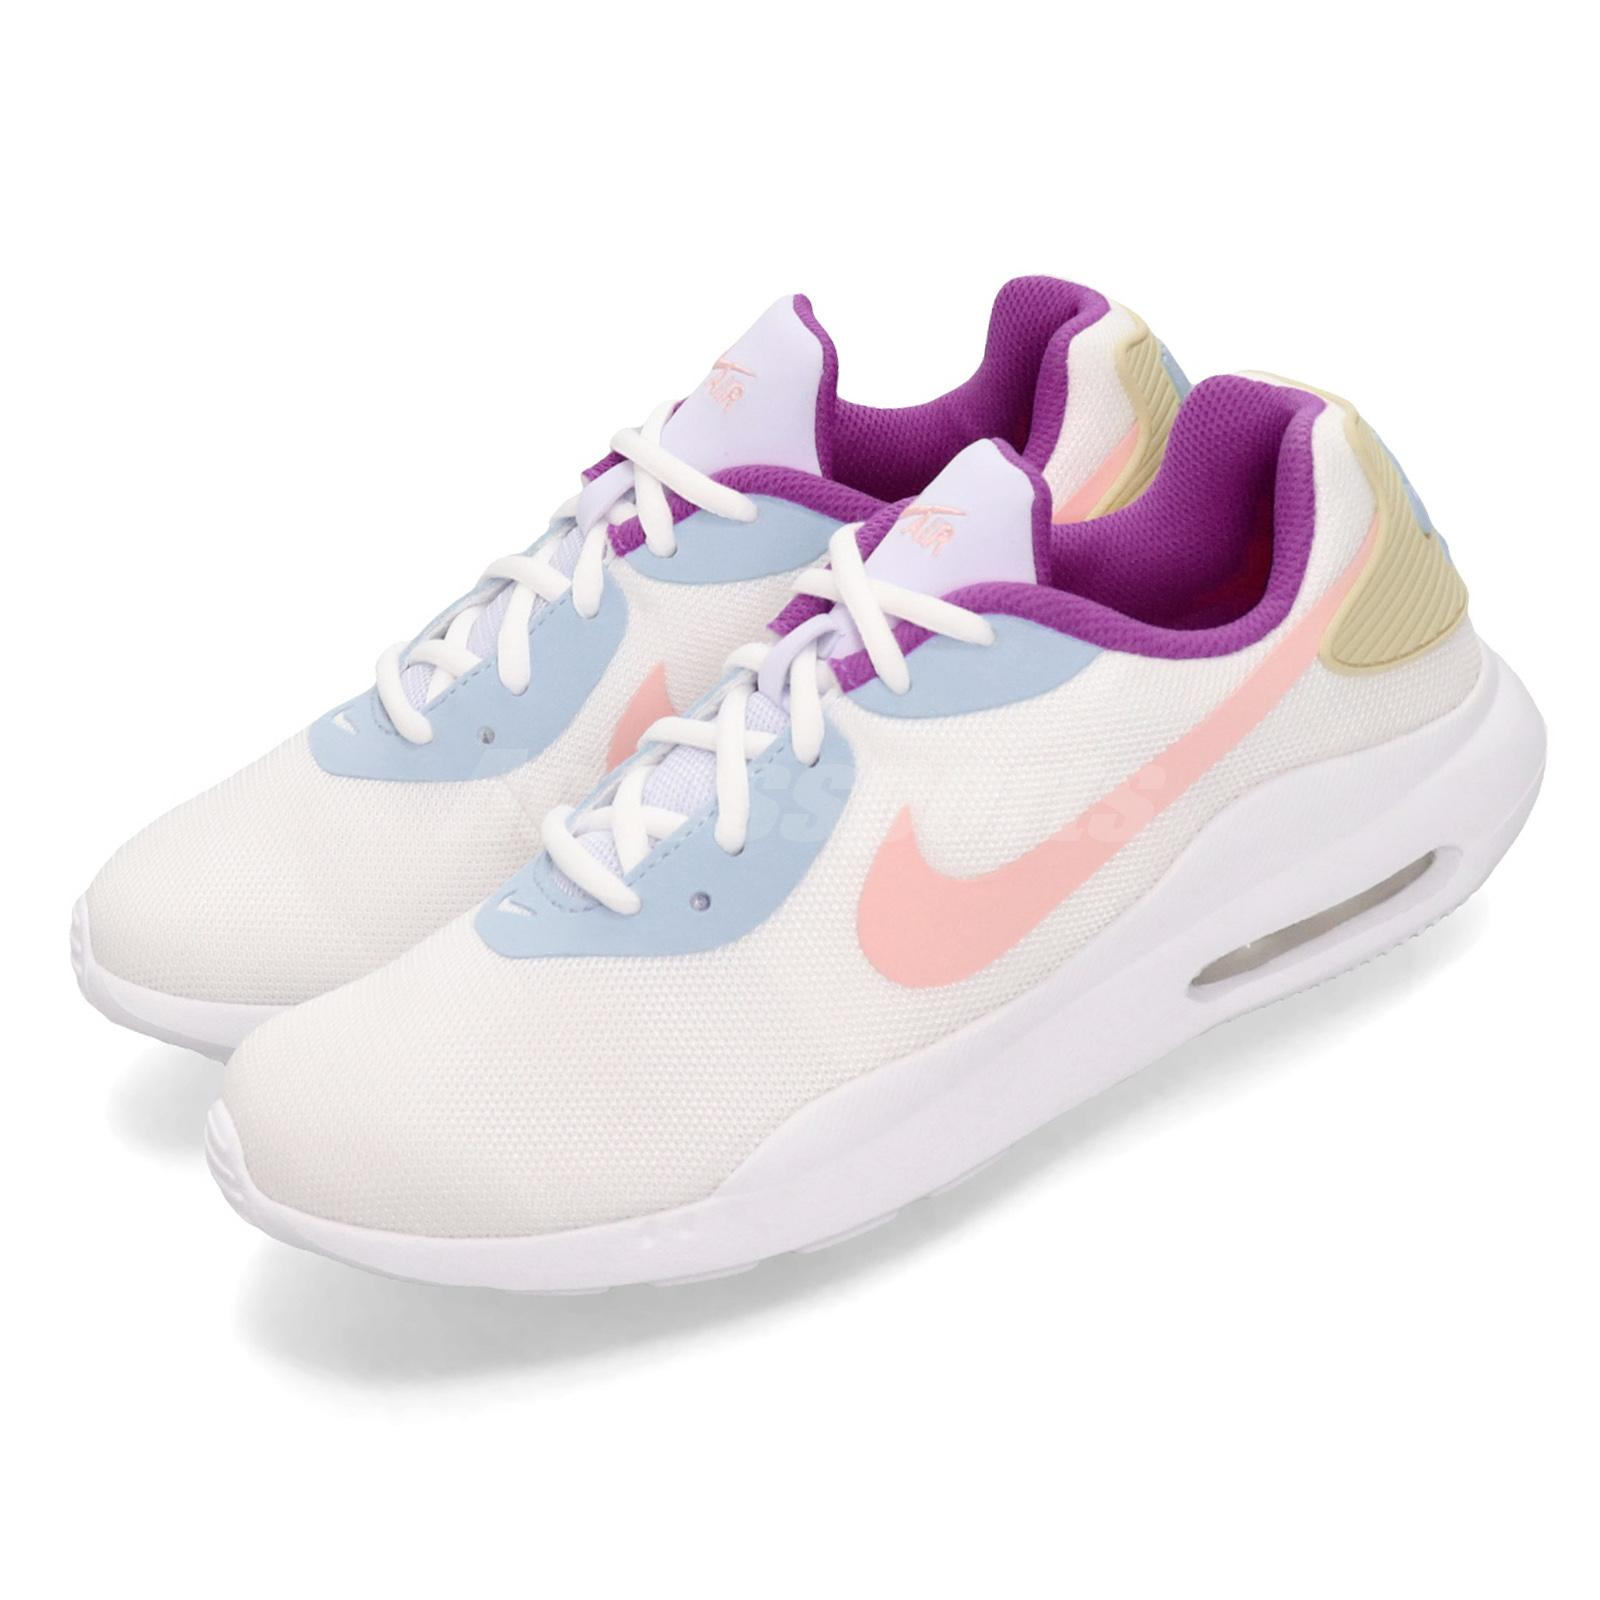 Details about Nike Wmns Air Max OKETO White Bleached Coral Purple Women Shoes AQ2231 104